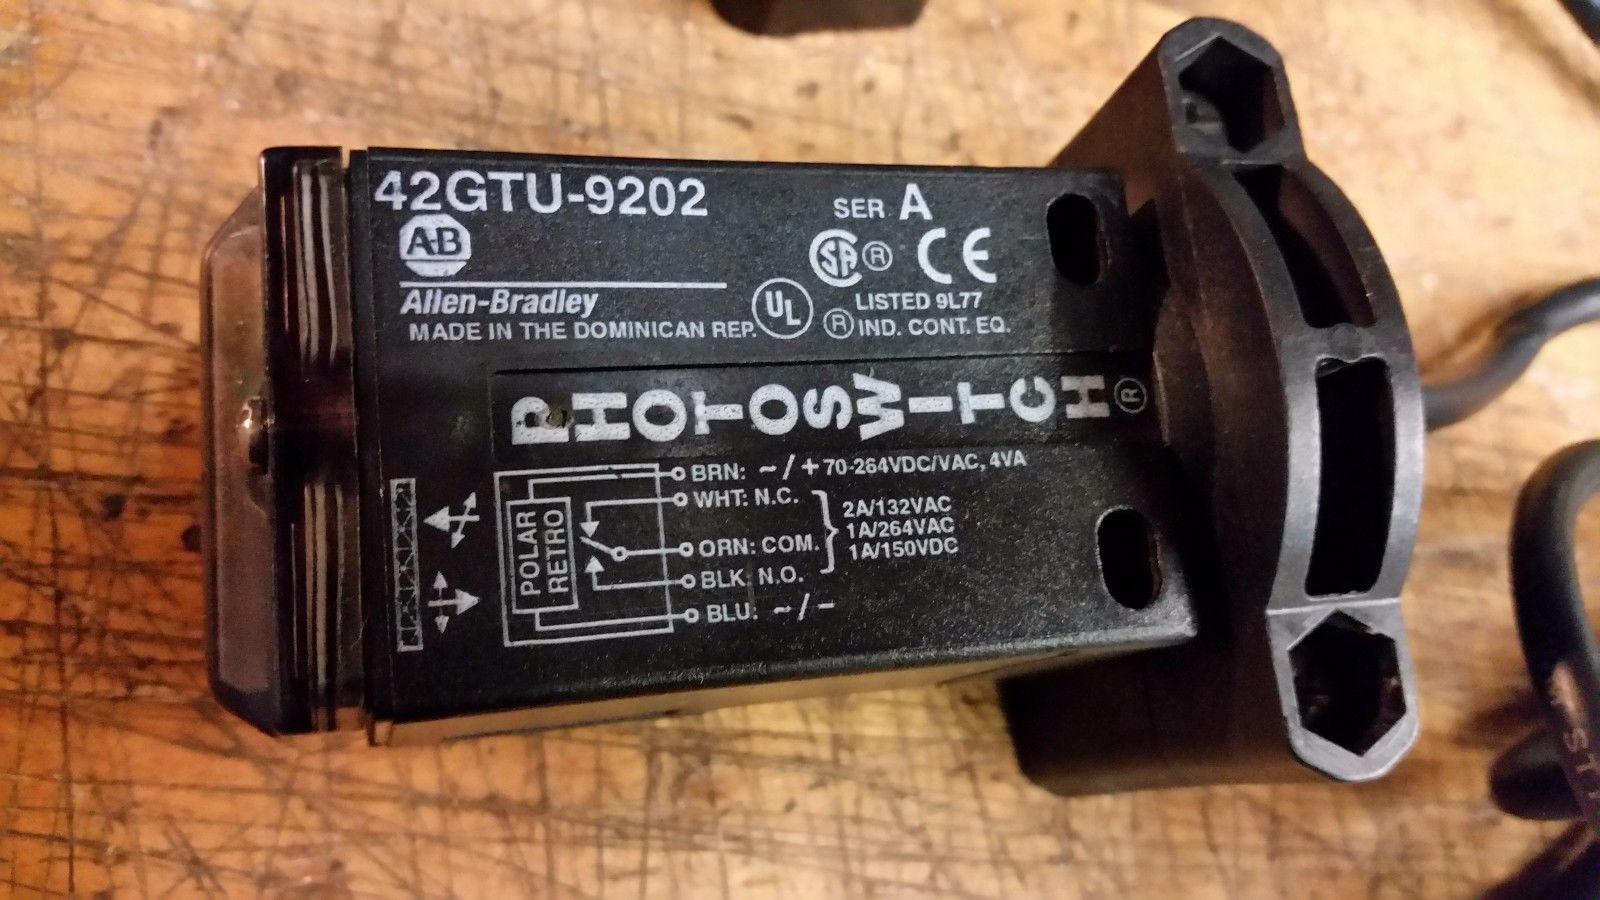 Allen bradley 42gtu-9202 42gtu9202 with cable and mount